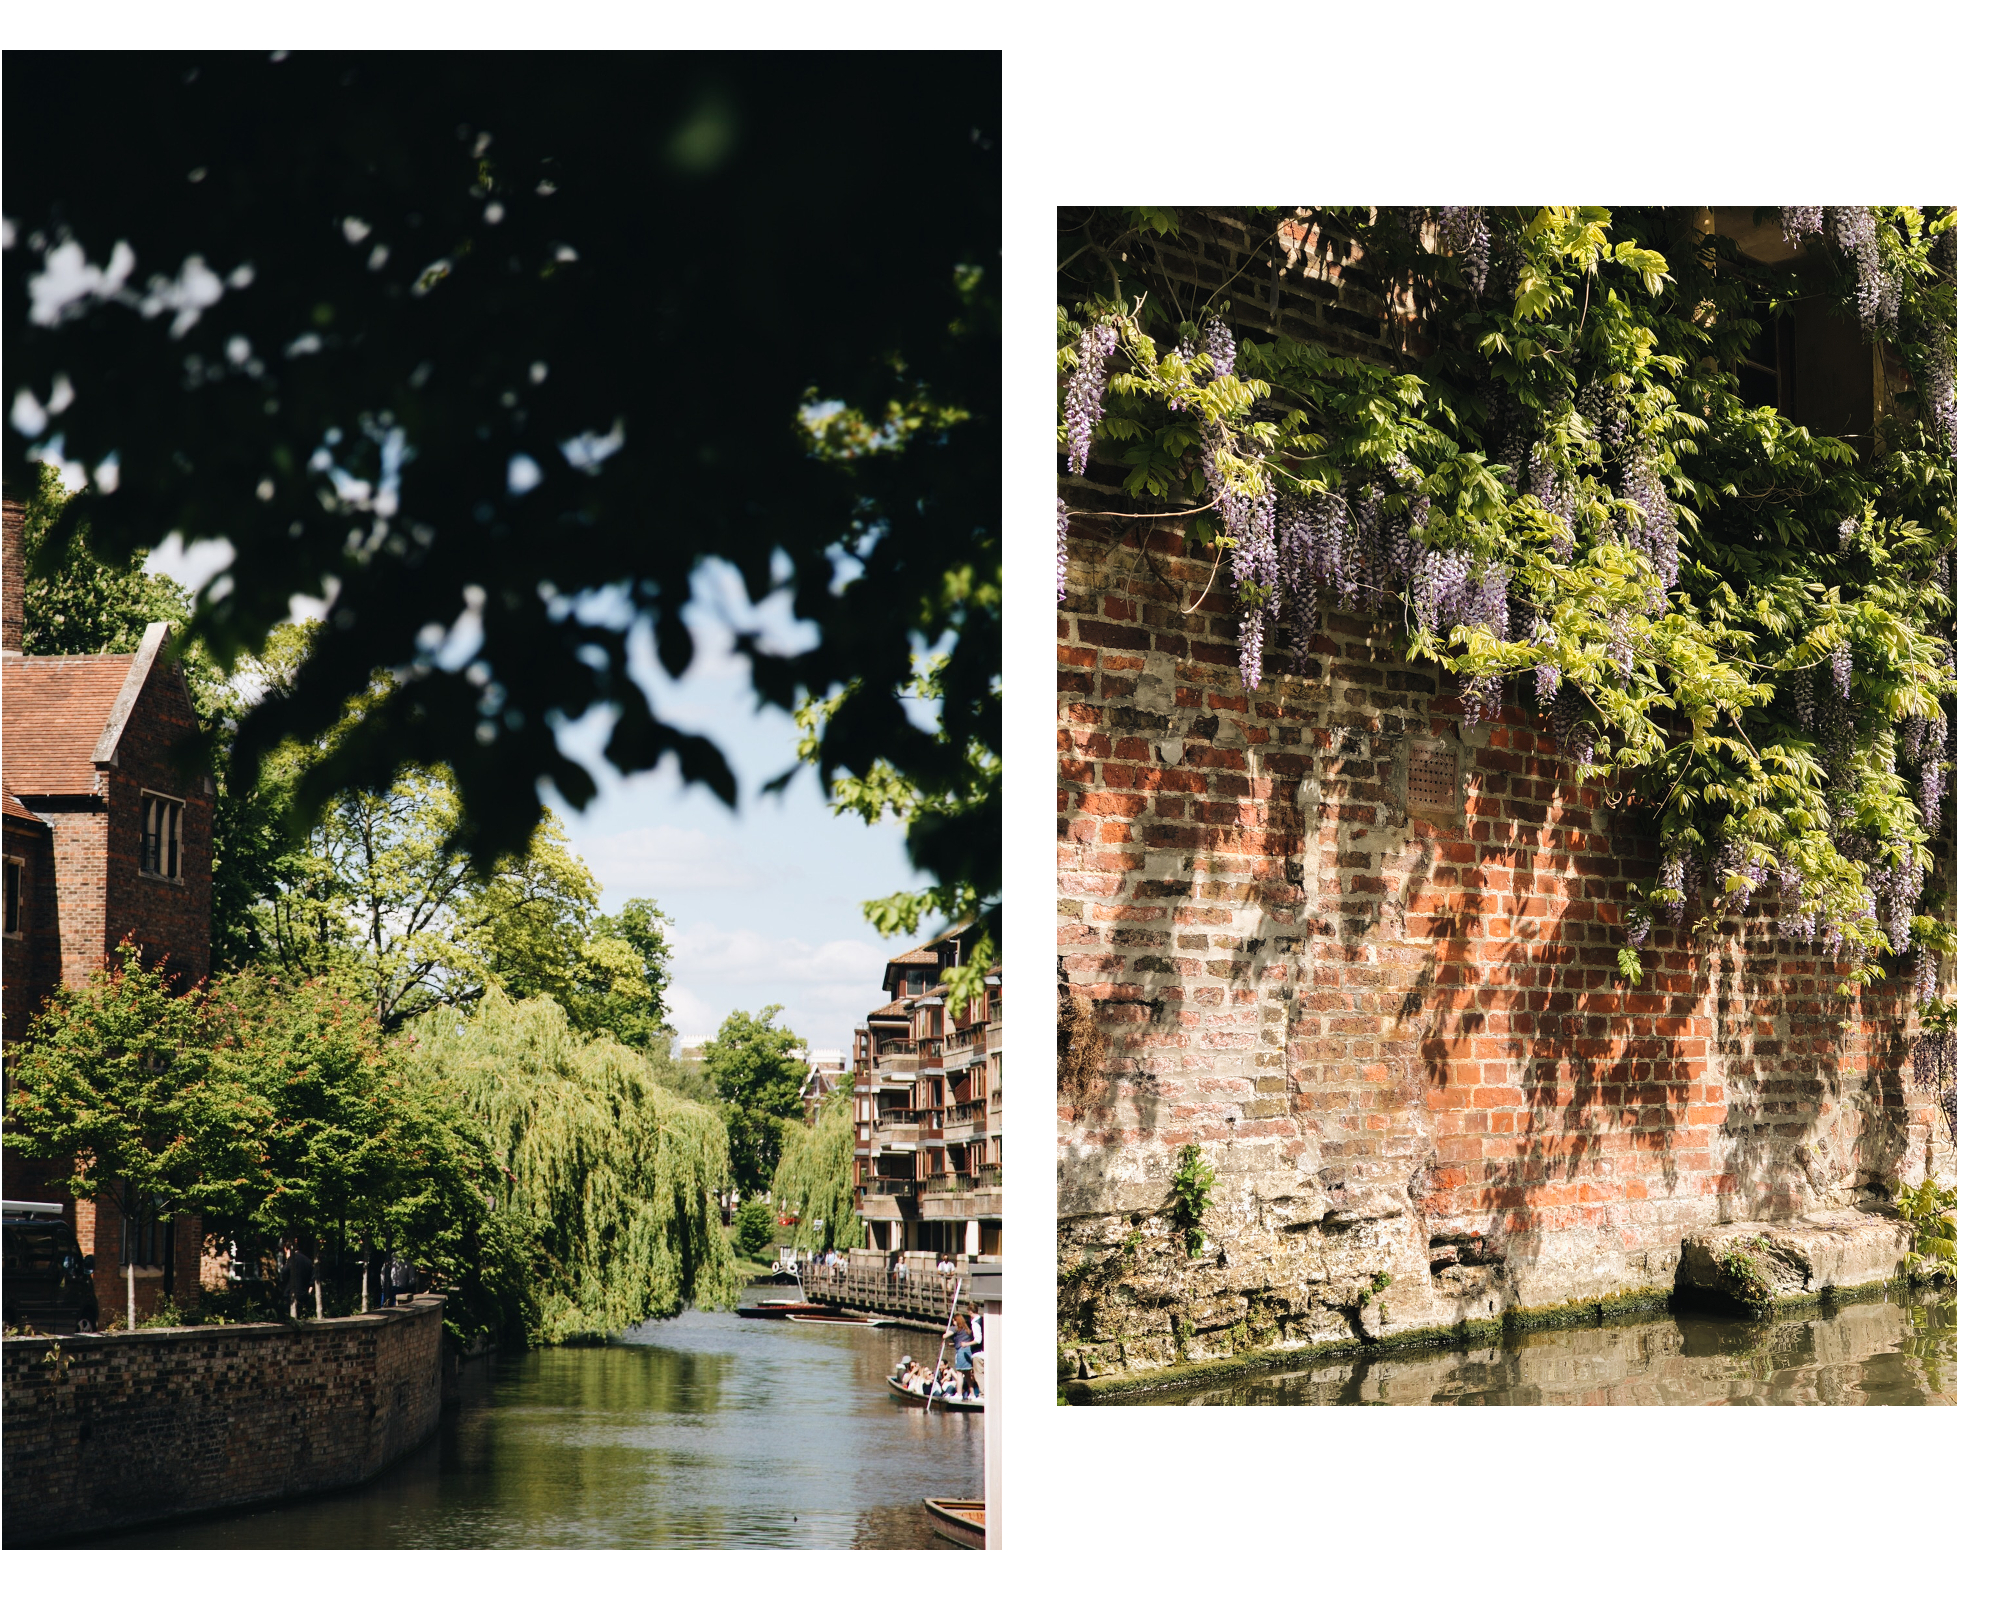 cambridge-punting-barque-riviere.jpg